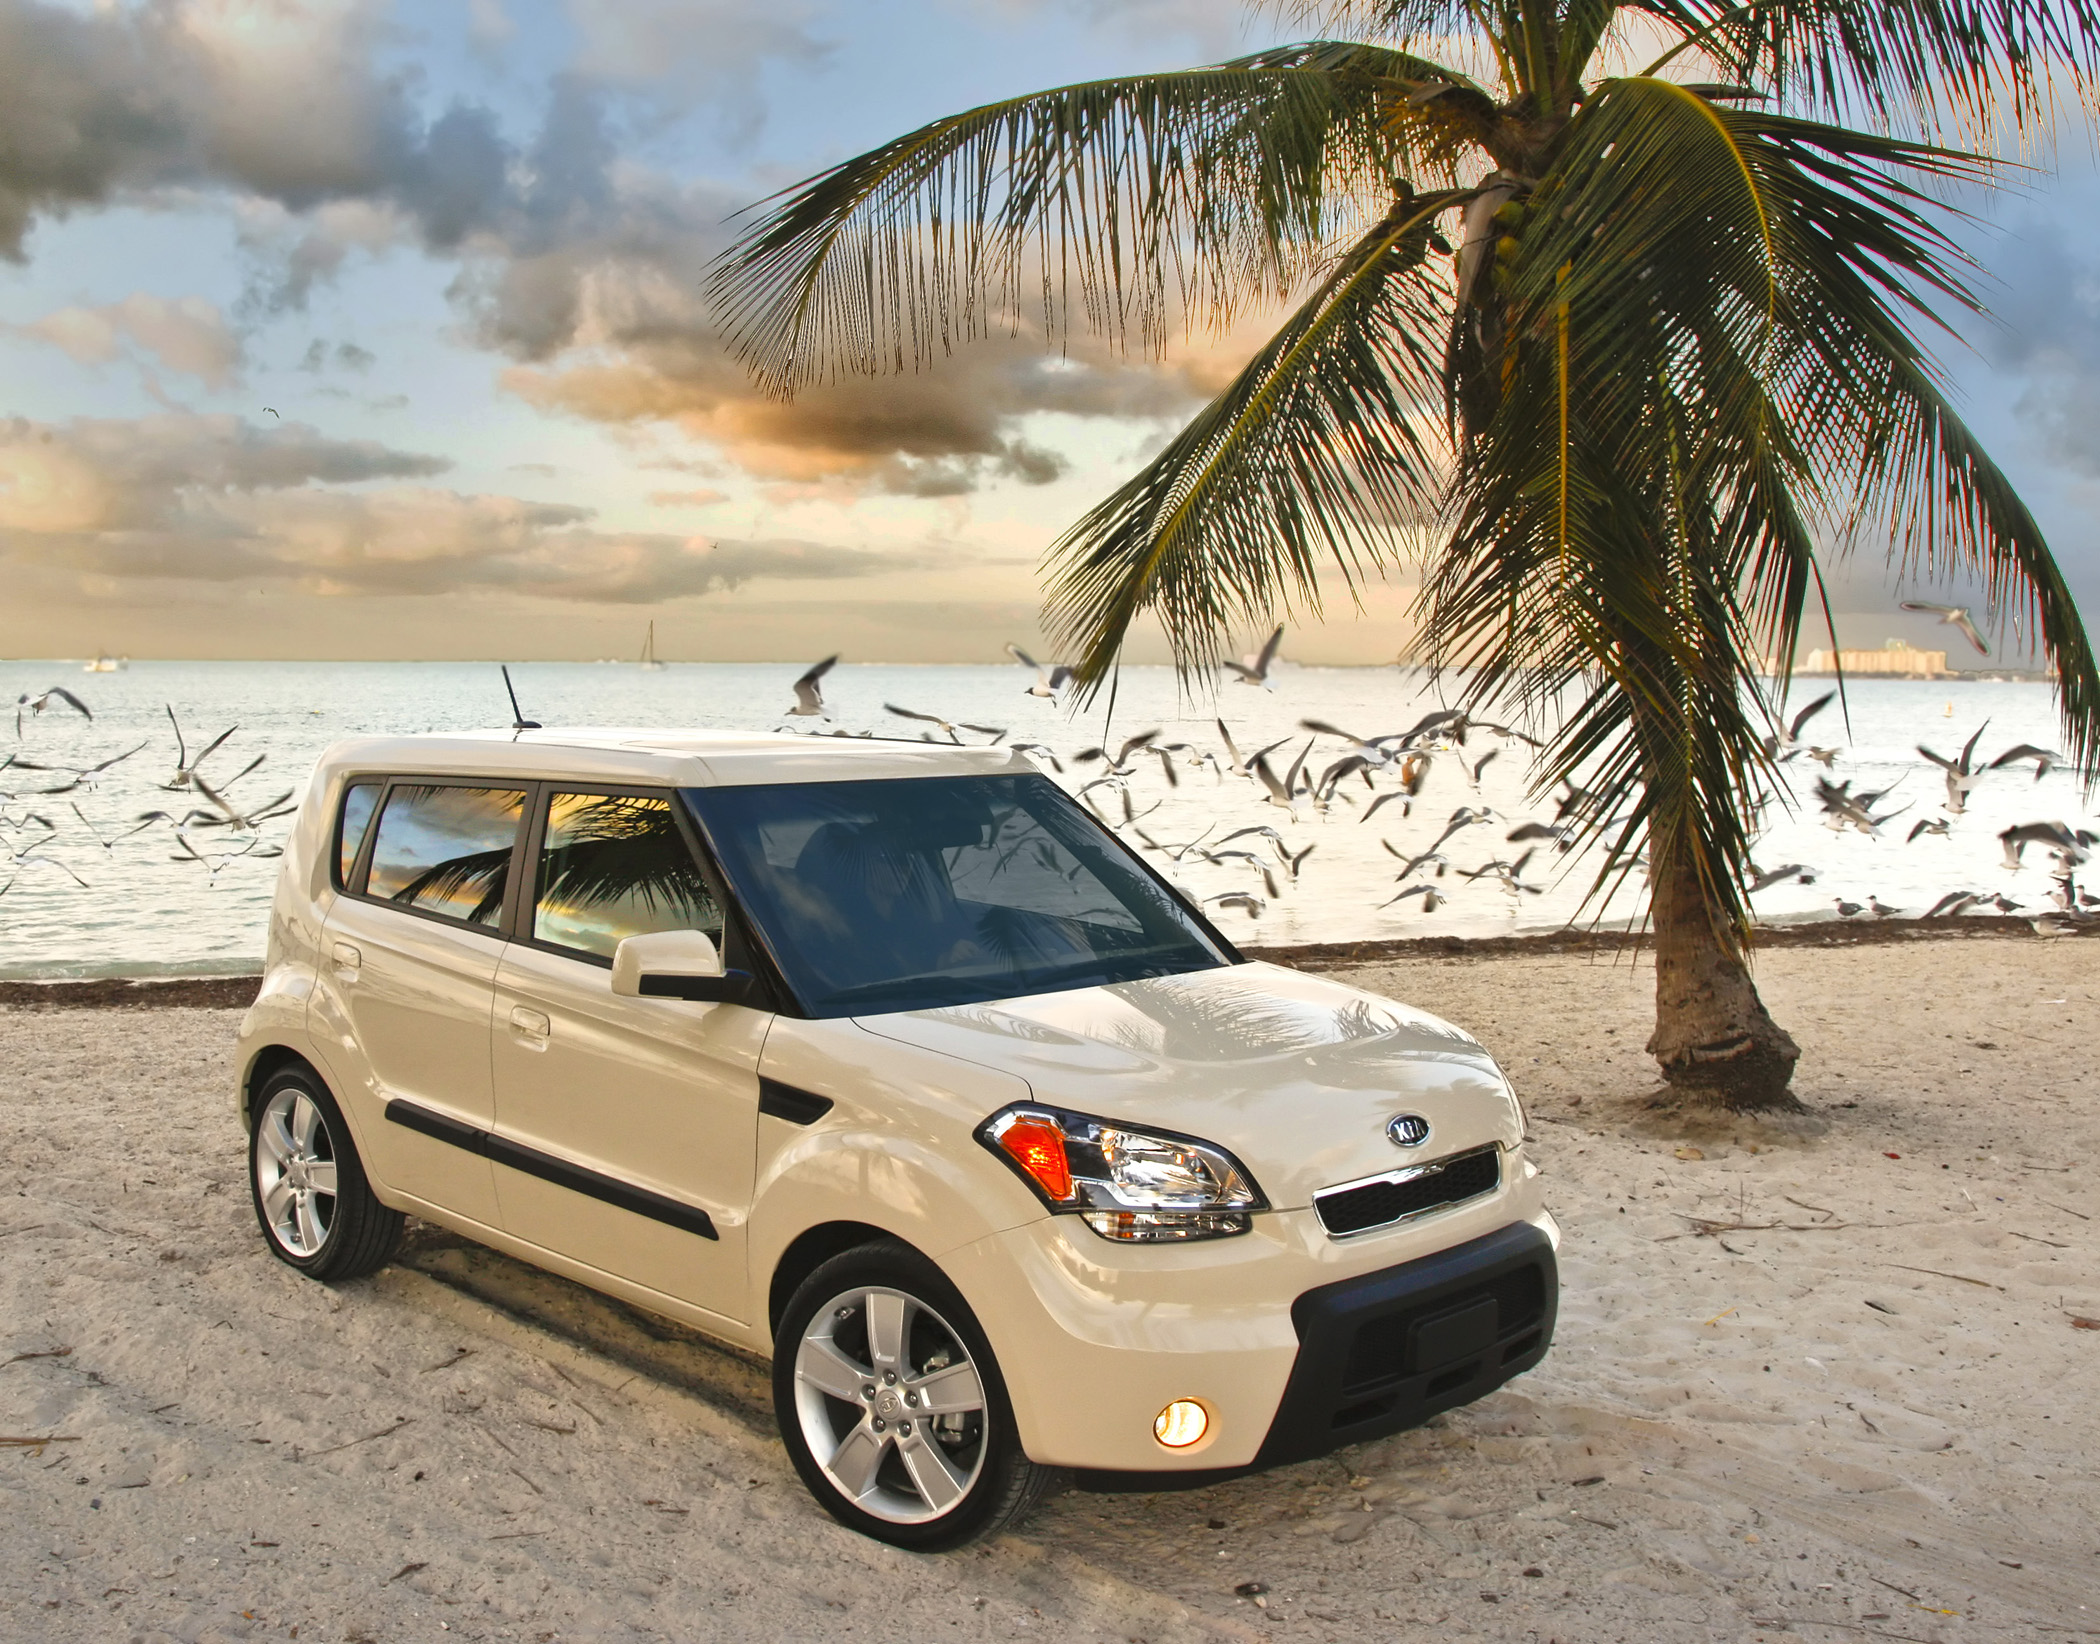 Kia Soul: Operating door locks from inside the vehicle